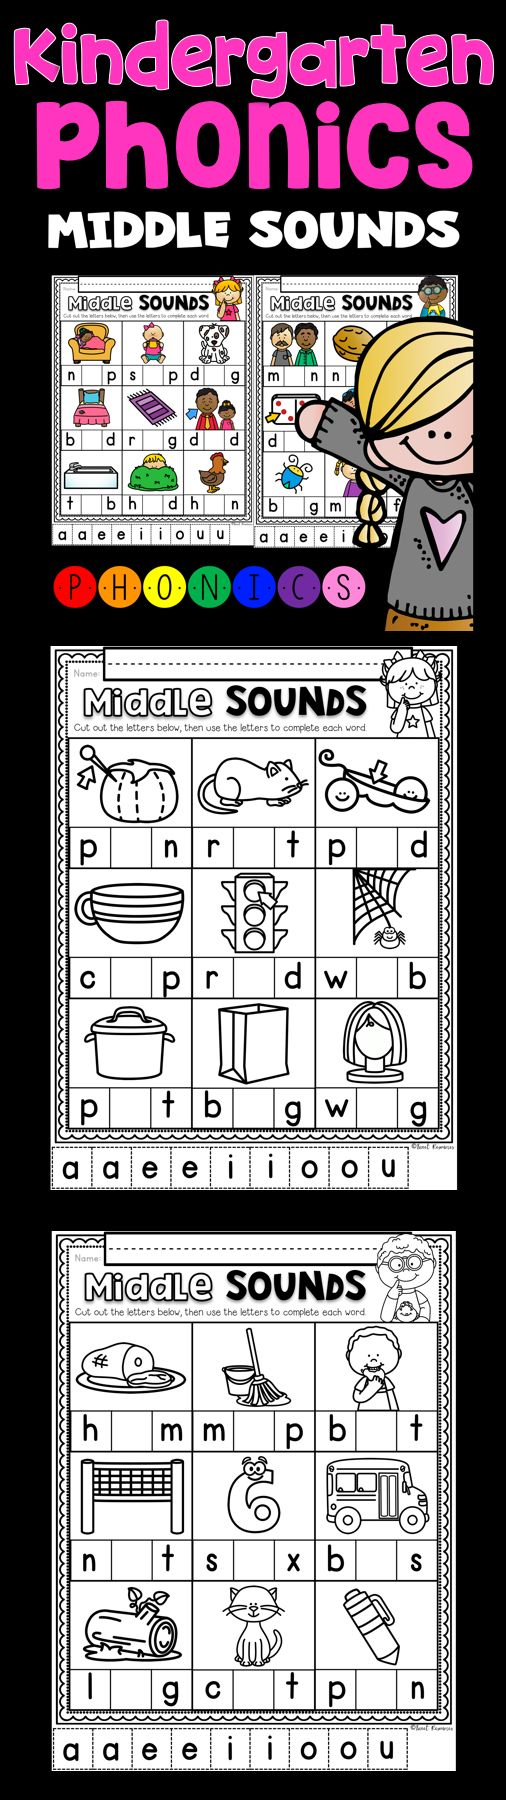 Middle Sounds ~ Introductory Phonics and Pre-Reading Skills ~ Printables  Introducing a brand phonics based series by Tweet Resources. For this activity, students are asked to cut and paste middle vowel sounds to a matching picture. These printables are perfect for your literacy stations, homework or review work.